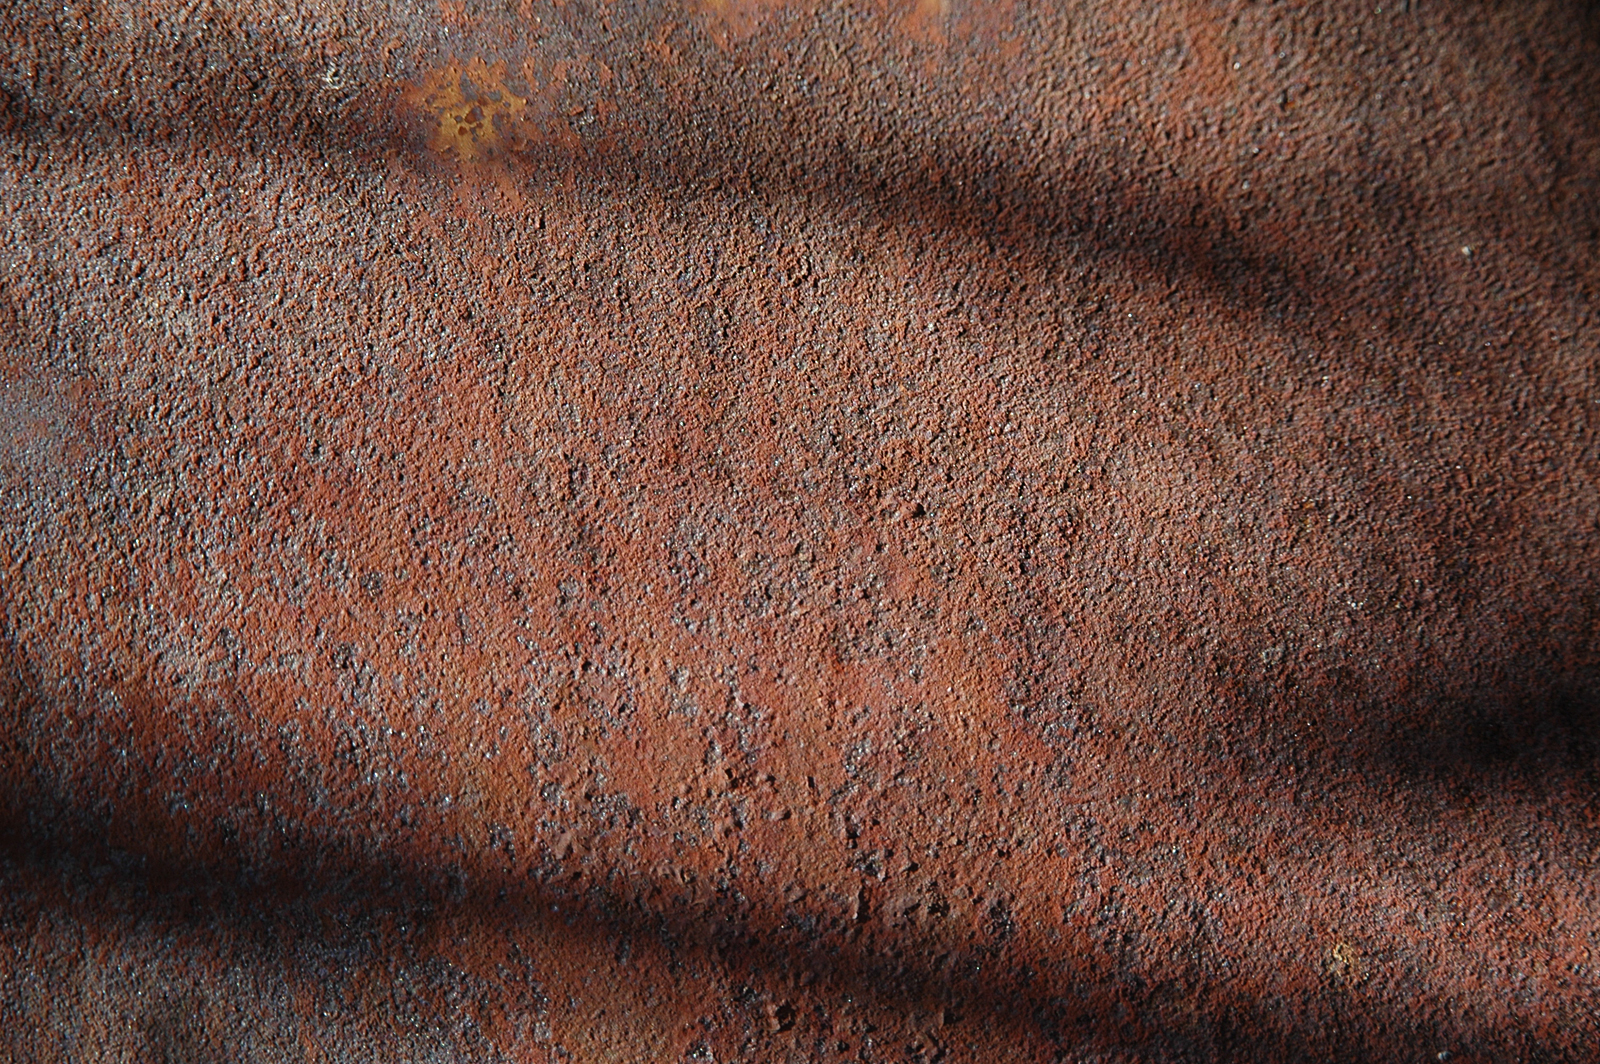 Rust metal texture background, old metal texture image